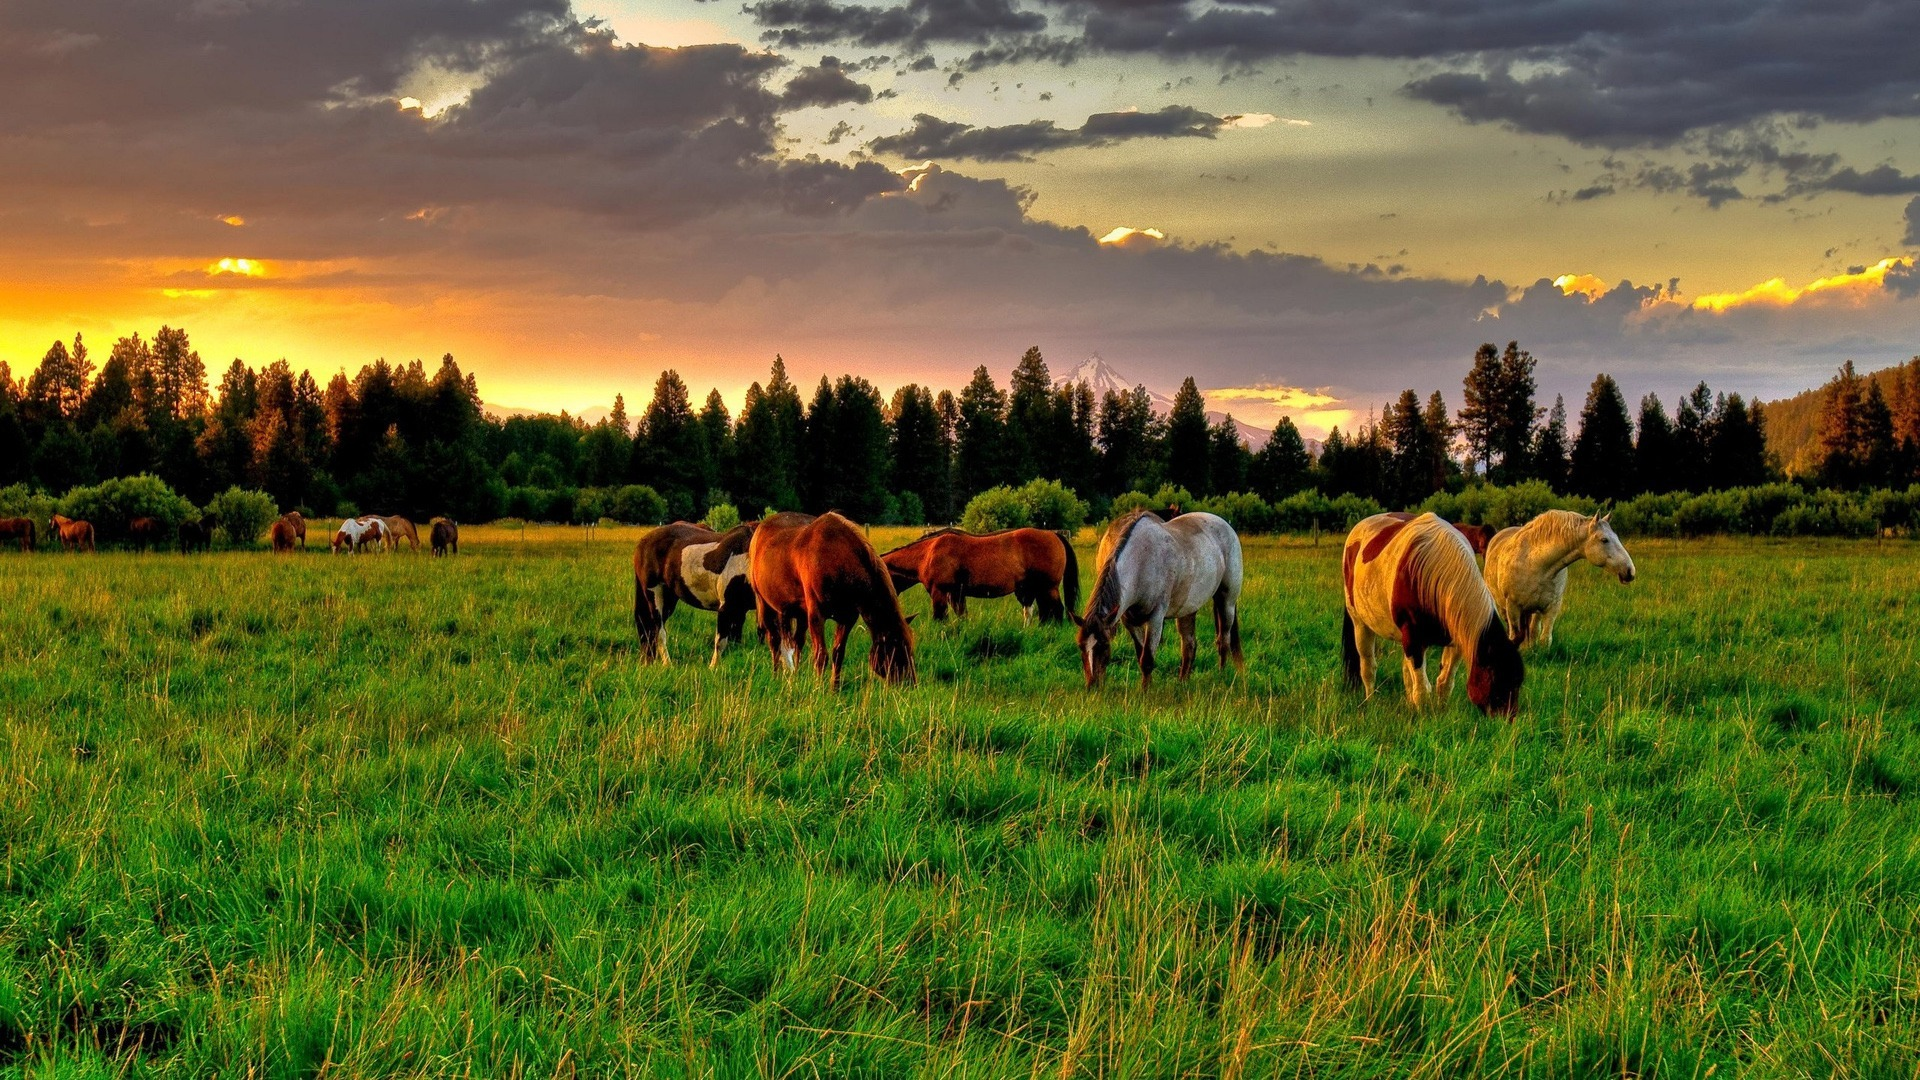 40300 download wallpaper Horses, Animals screensavers and pictures for free